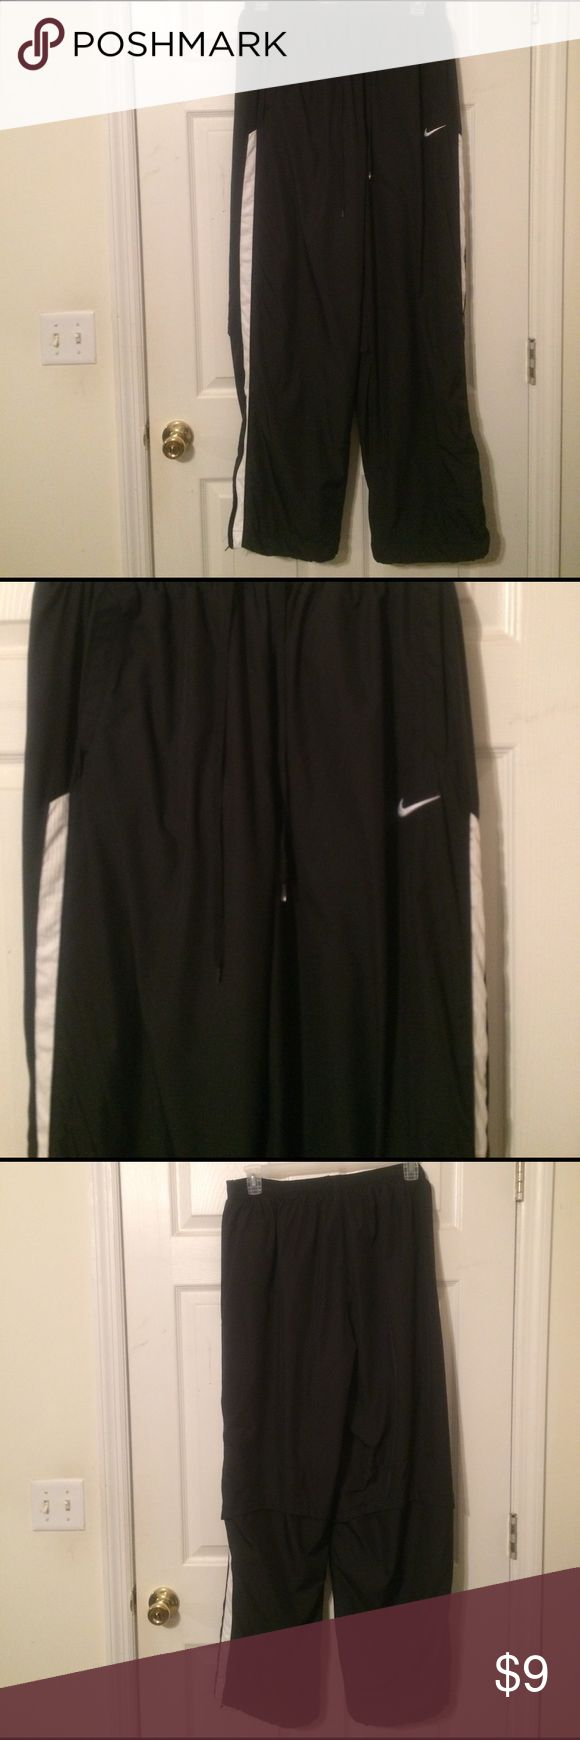 Nike Men's Pants Size XXL Nike Men's Pants Size XXL.  Black with white stripes on the sides of both legs.  Great used condition.  Pants are lined and have zippers at bottom of both legs.  No rips, snags, stains or any damage.  Nice pair of Nike pants that need a new home😊 Questions and offers welcomed!  Thanks for looking 😊 Nike Pants Sweatpants & Joggers